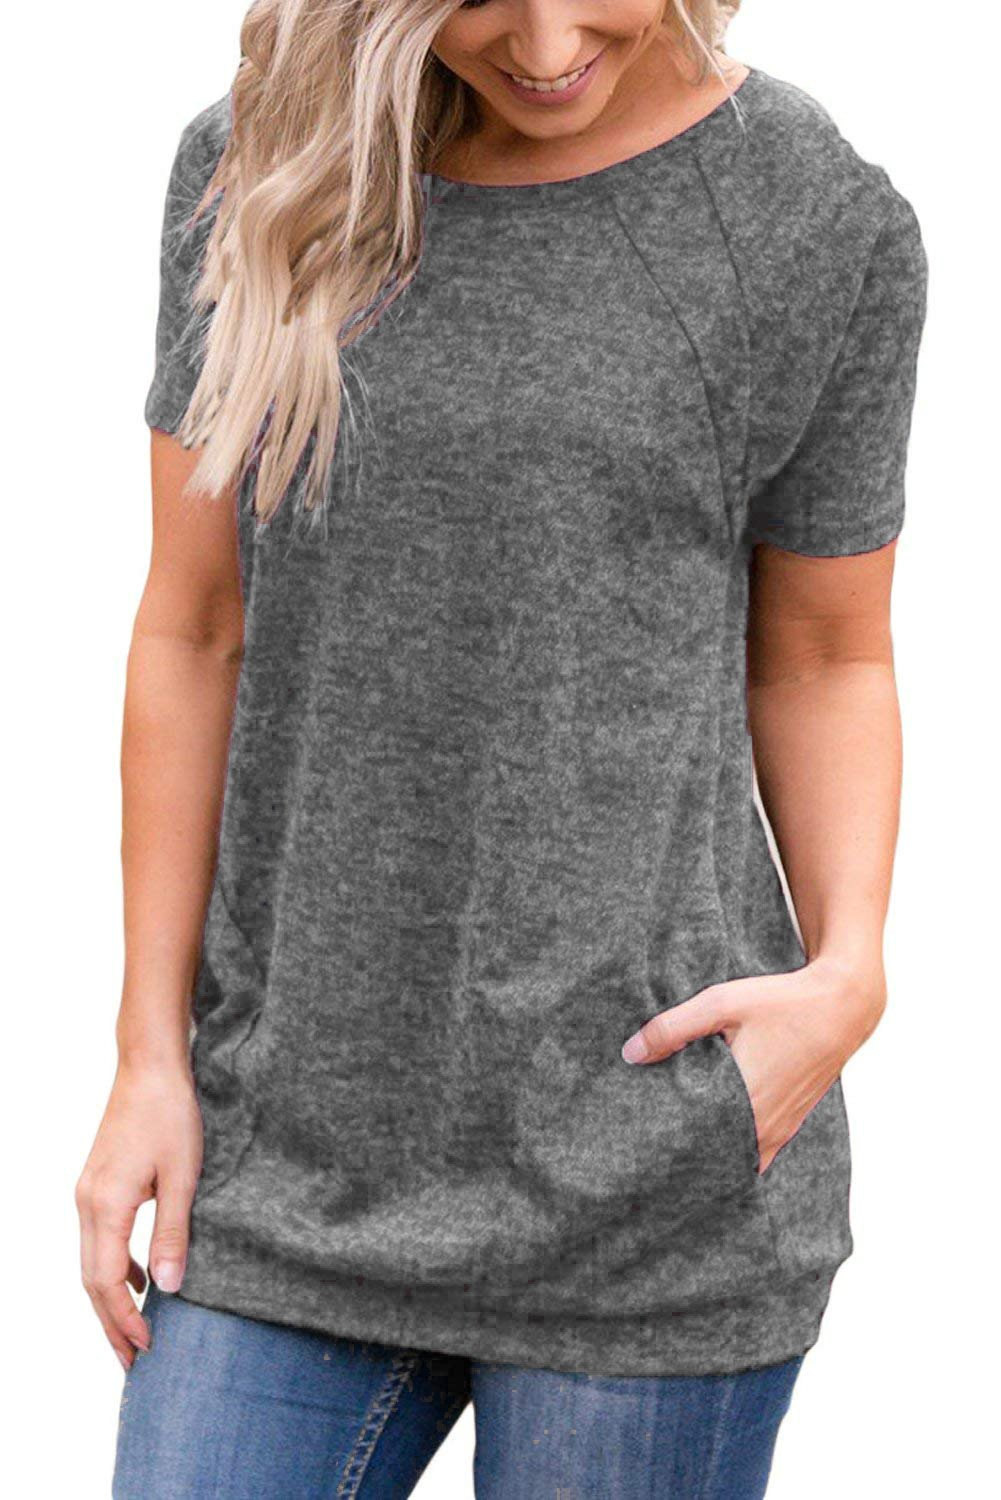 Uniboutique Womens Short Sleeve Round Neck Tunic T Shirts Tops with Pockets Grey